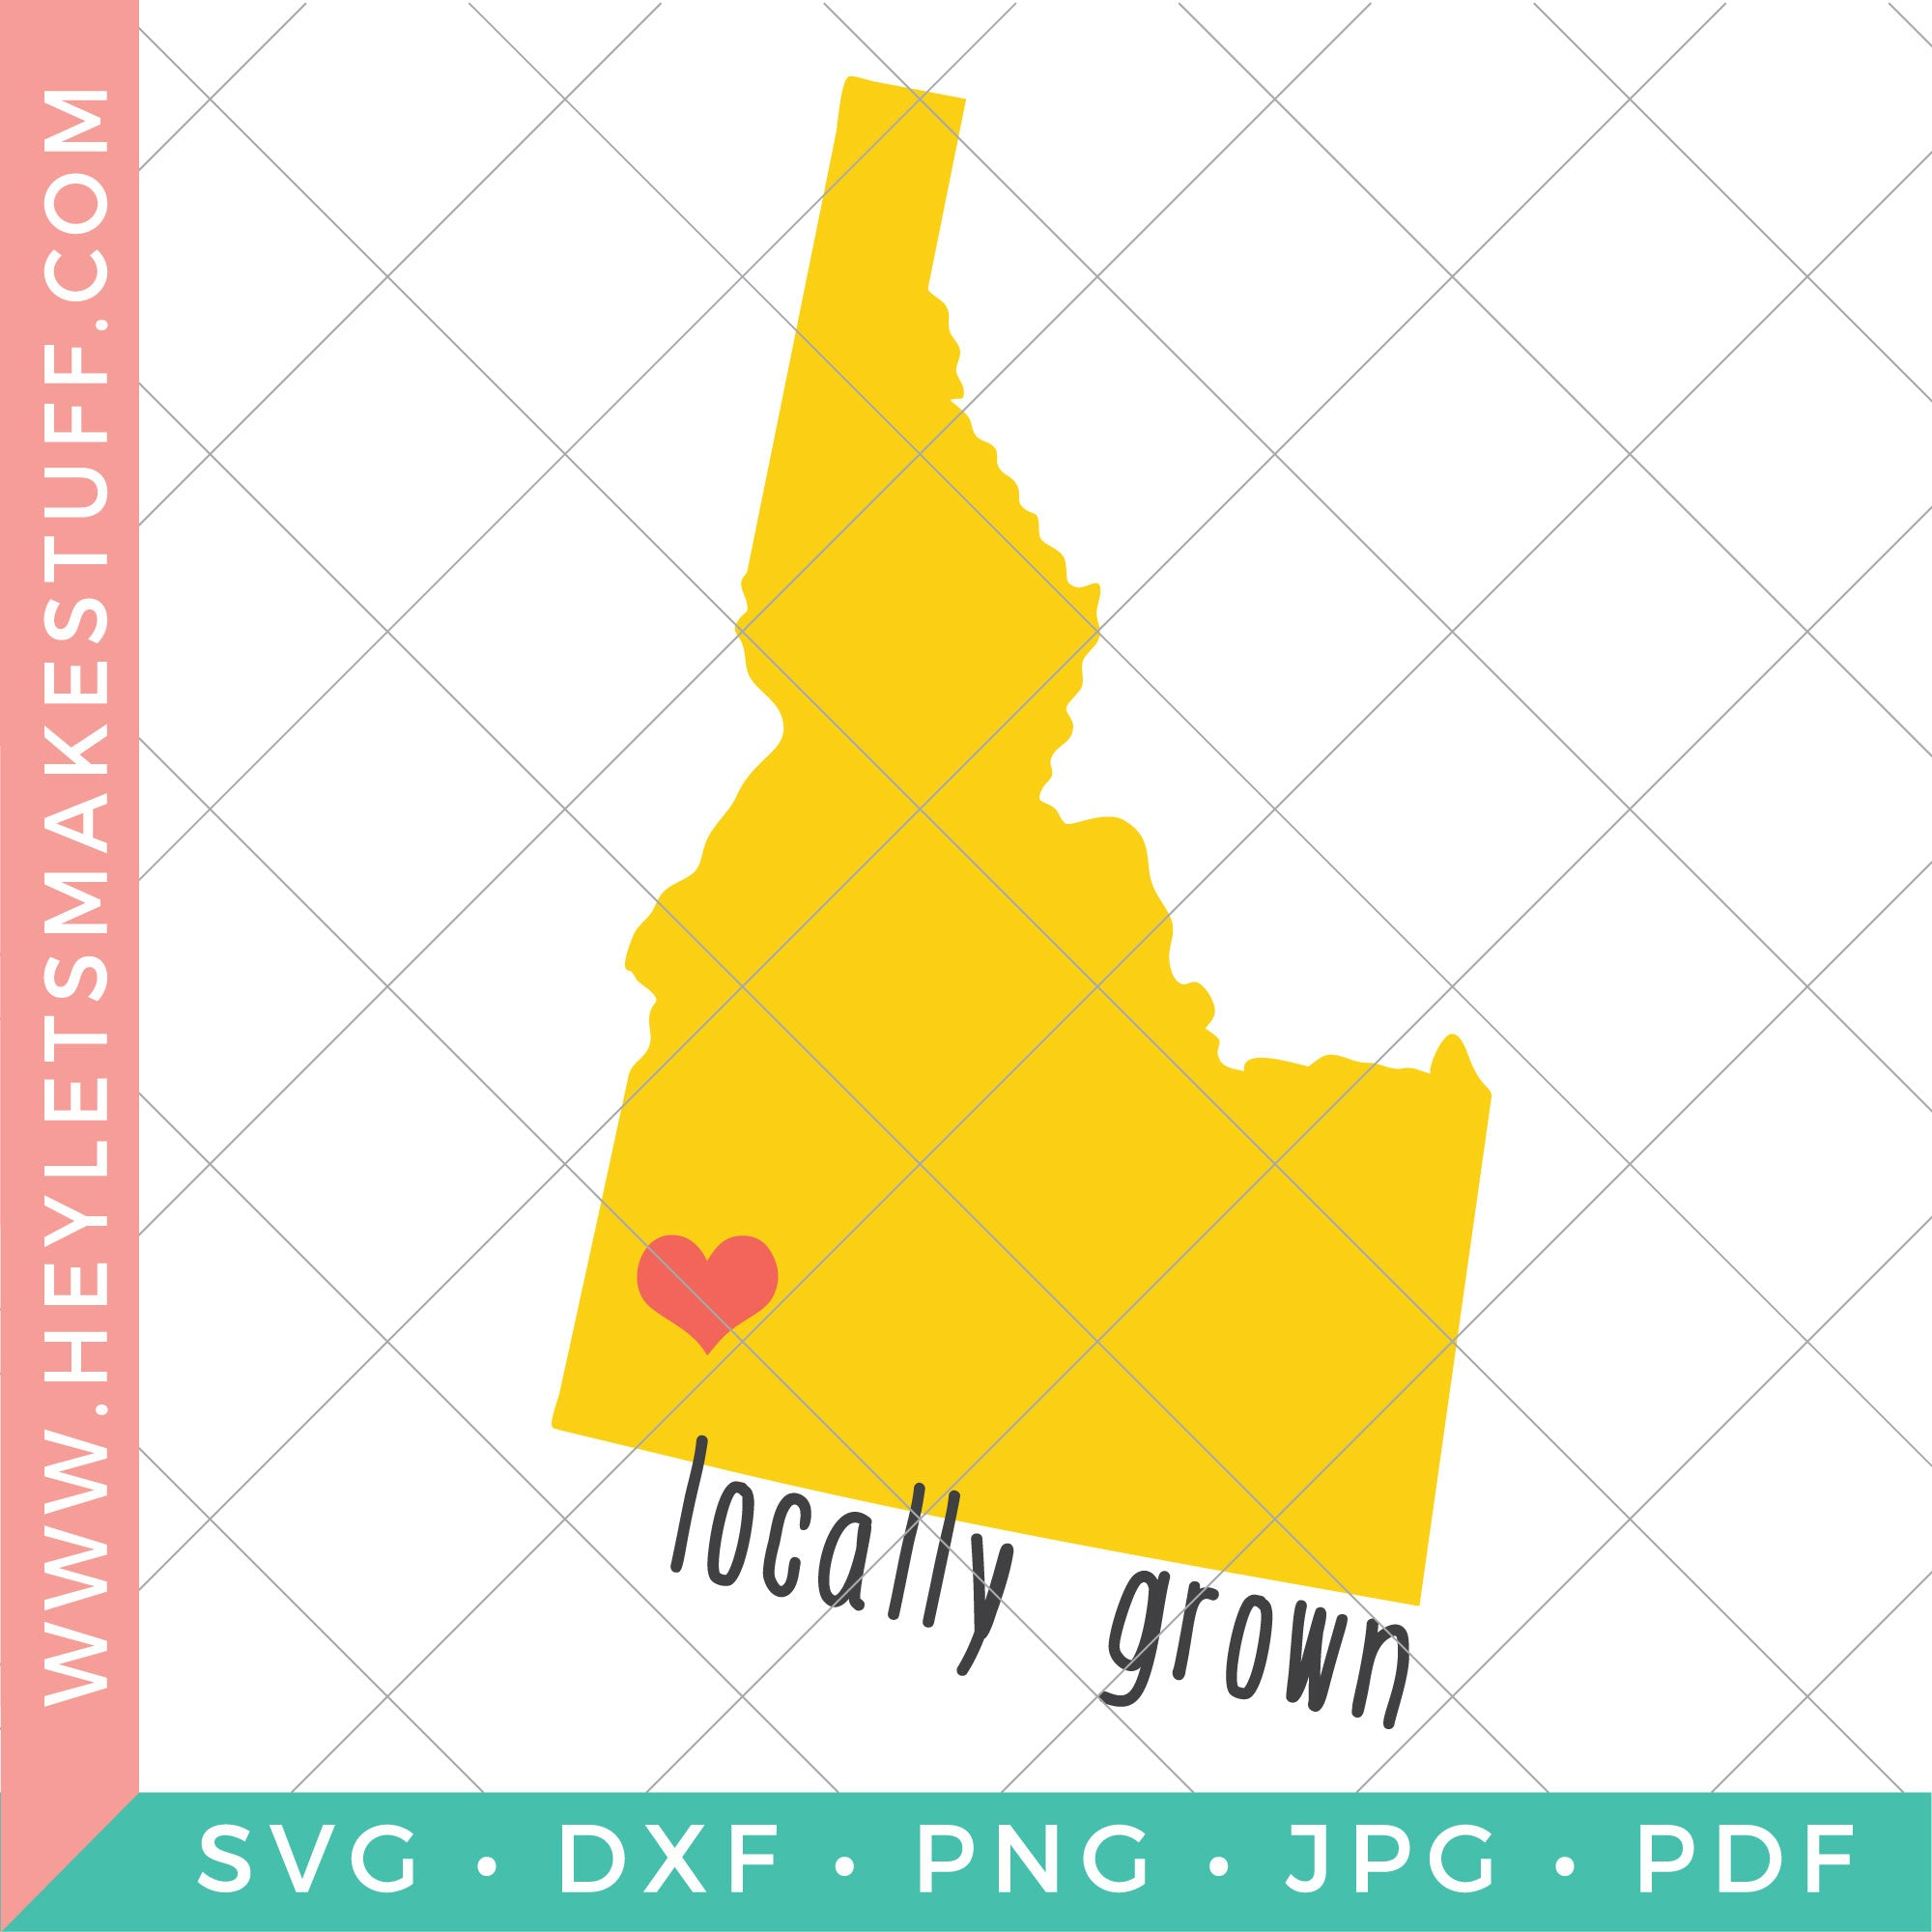 Locally Grown - Idaho